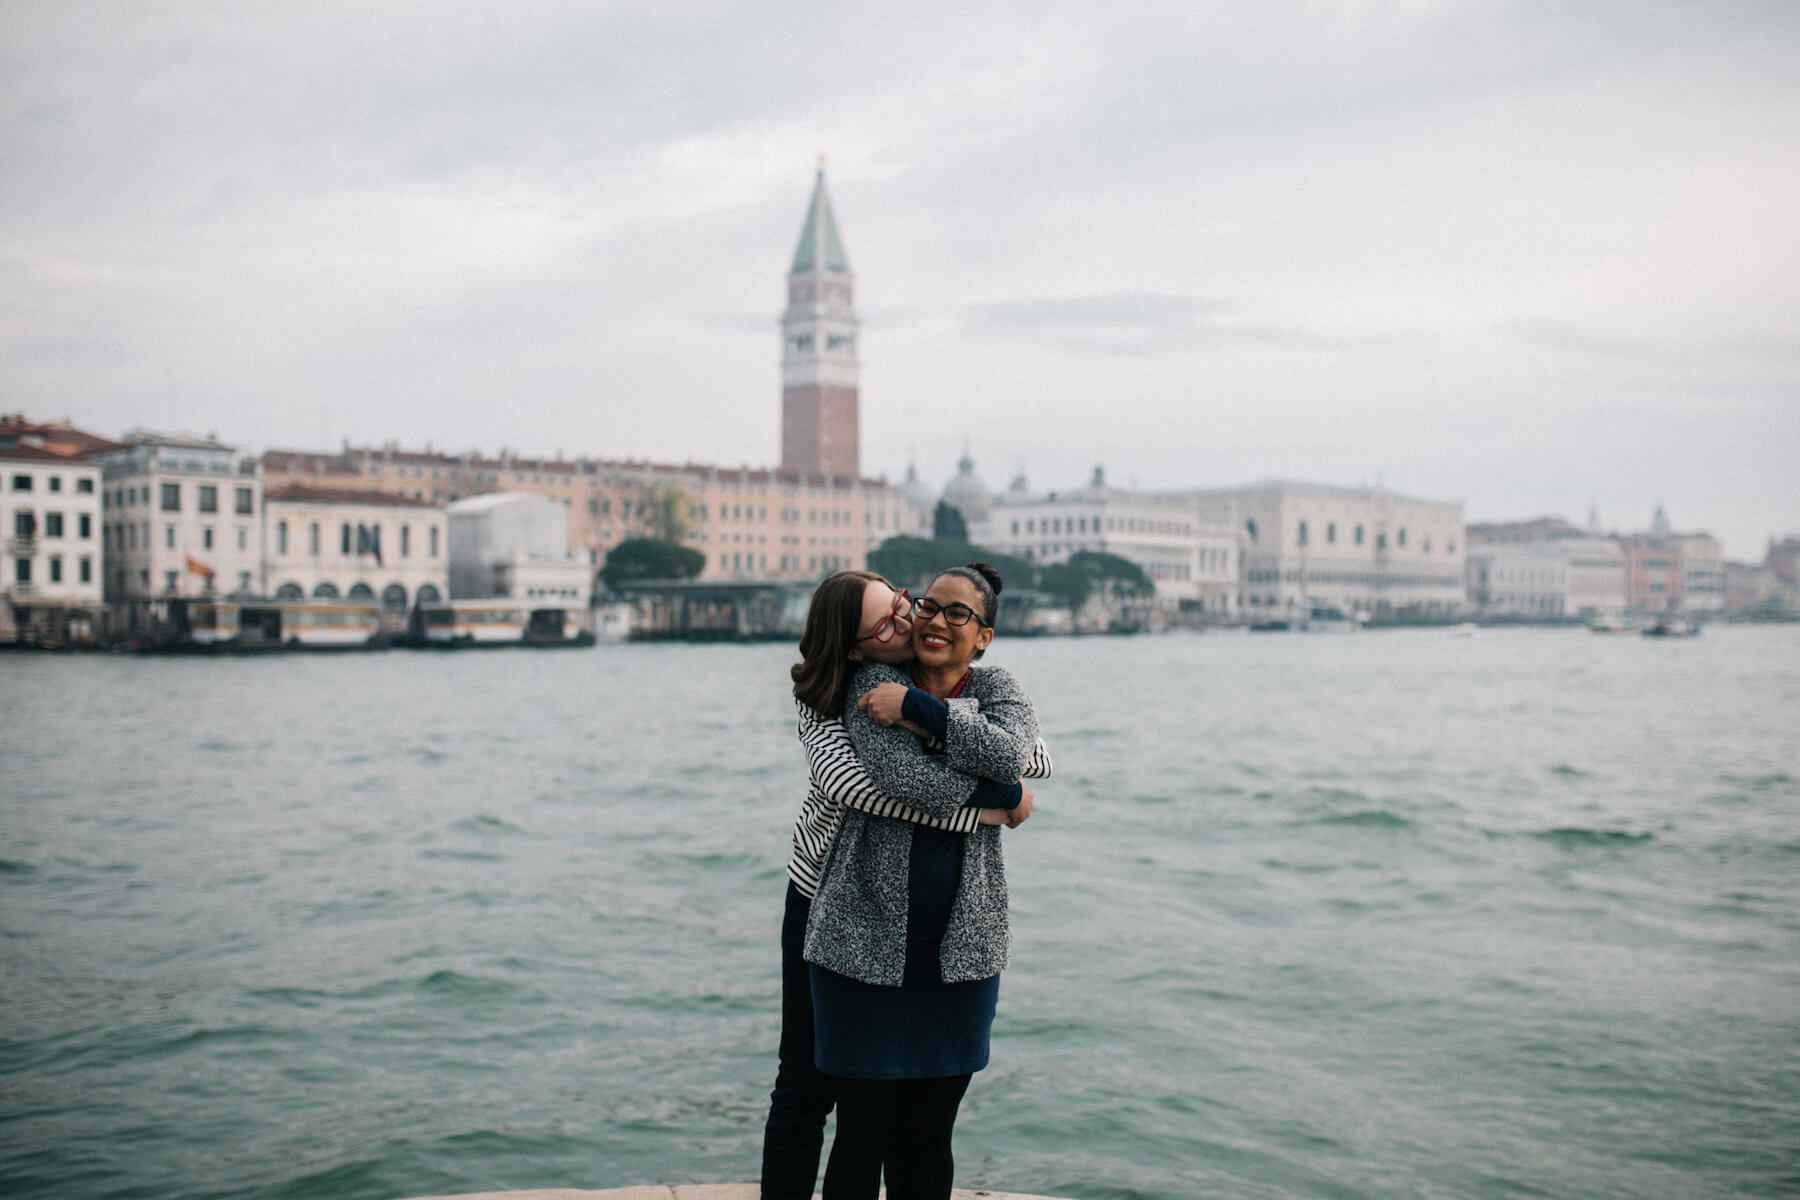 LGBTQ pregnant couple embracing each other in Venice, Italy